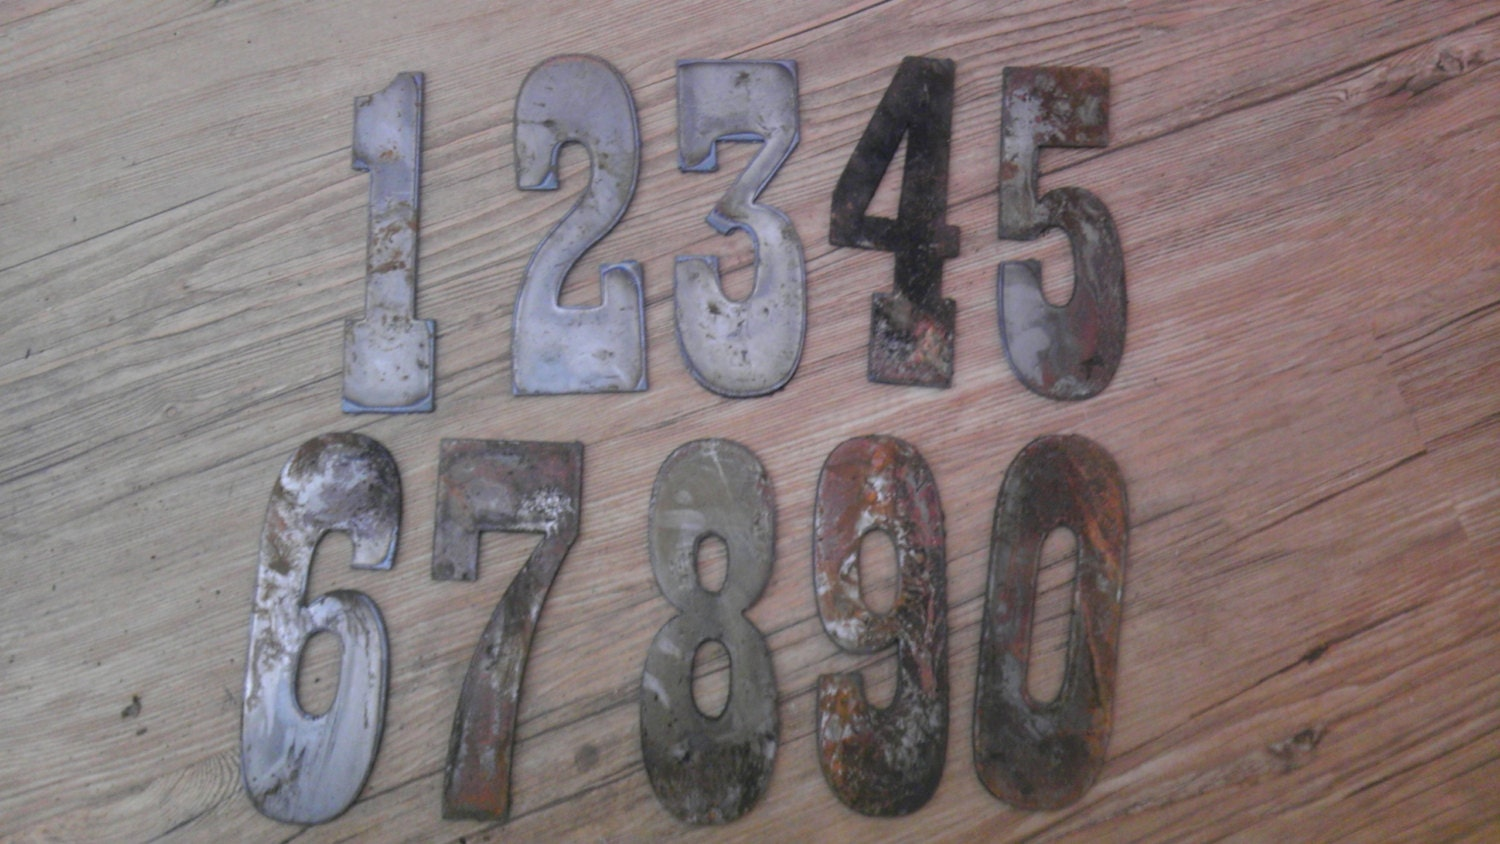 1 Inch Metal Letters 6 Inch Letters Numbers Per Number Rusty Vintage Western Style